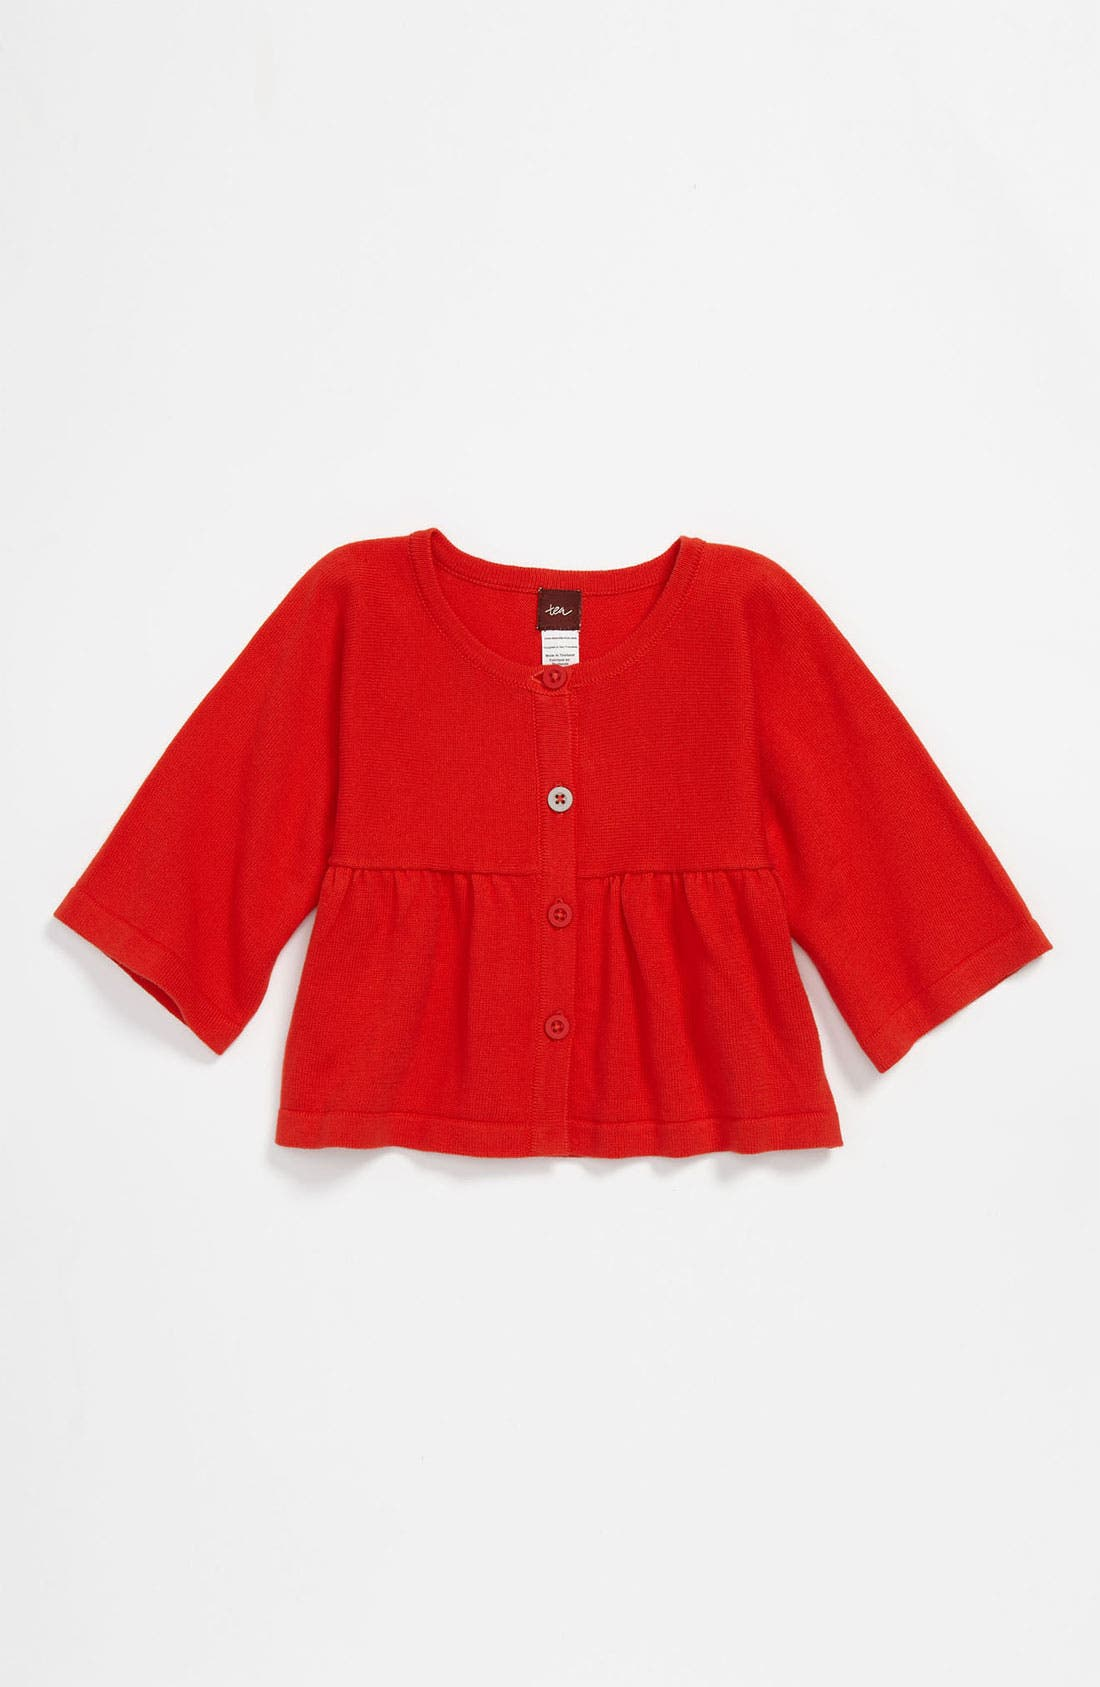 Alternate Image 1 Selected - Tea Collection 'Charming' Cardigan (Toddler)